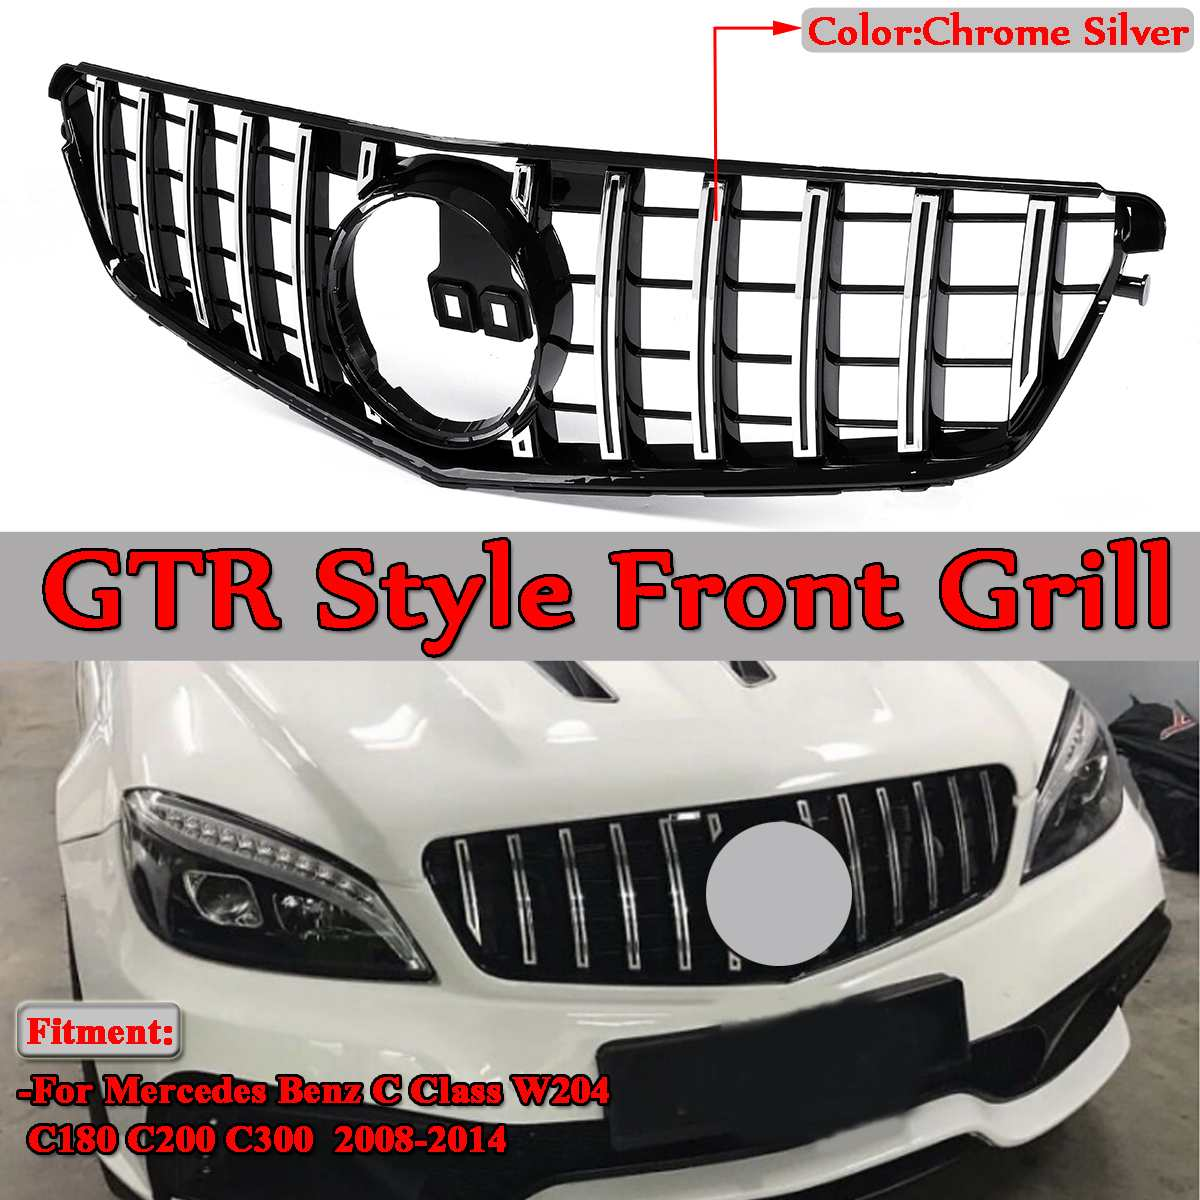 New Silver GTR Style Car Front Bumper Grill Grille Without Emblem For Mercedes For Benz C Class W204 C180 C200 C300 2008-2014 Mercedes-Benz A-класс